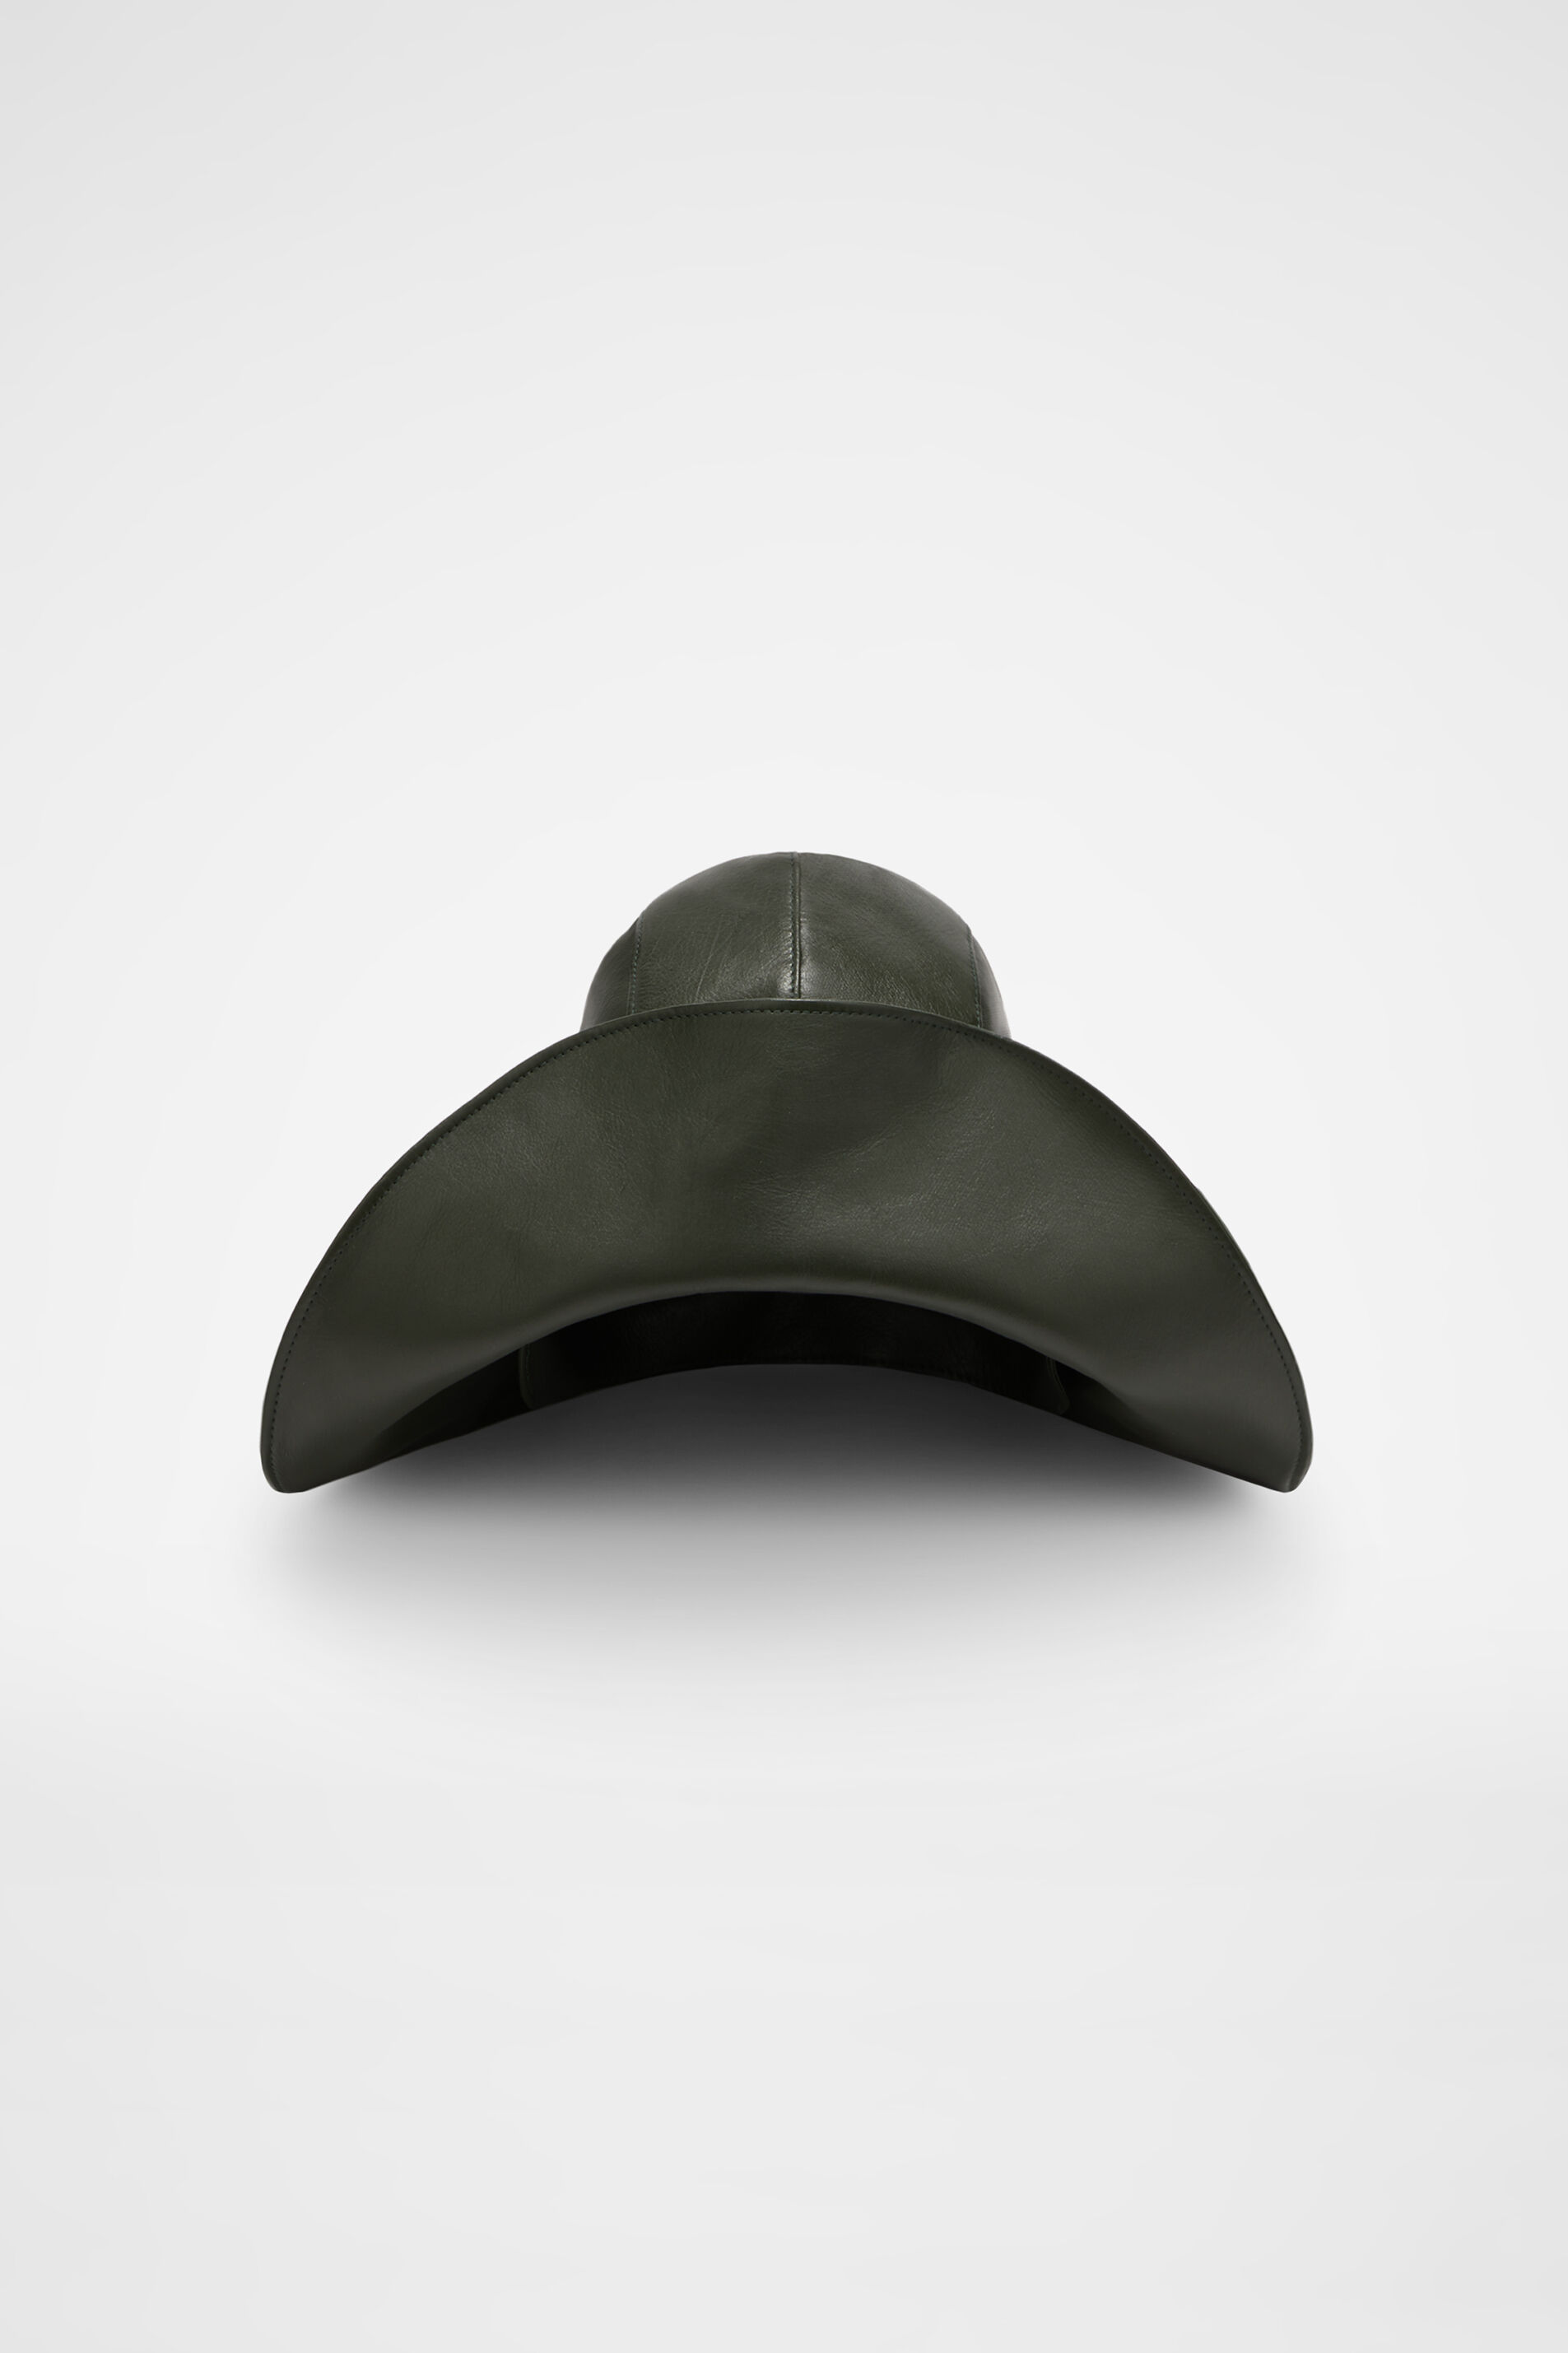 Leather Hat, dark green, large